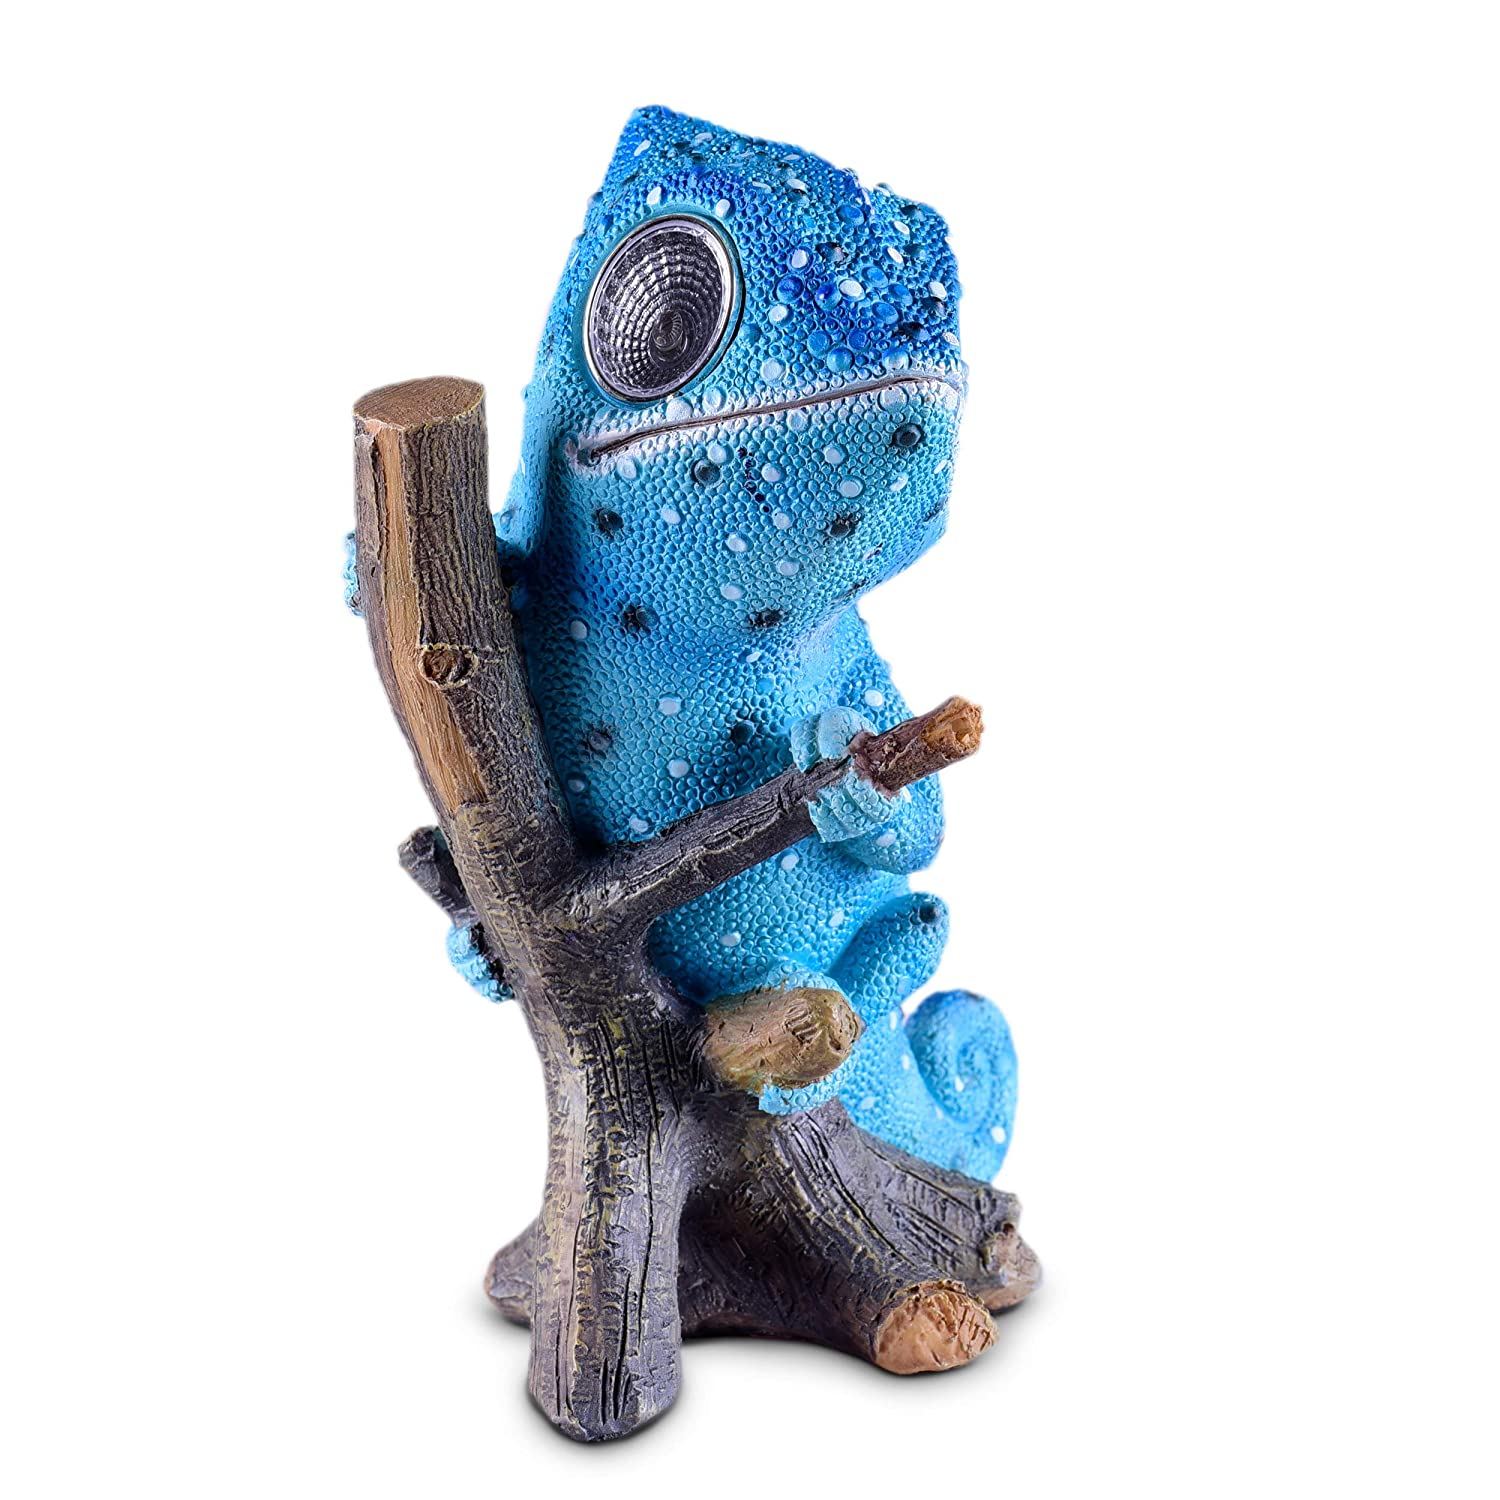 Solar Garden Decor Chameleon Figurine | Lawn and Yard Decorations | Outdoor LED Animal Figure | Light Up Decorative Statue Accents Patio, Balcony, Deck | Great Housewarming Gift Idea (Blue, 1 Pack)